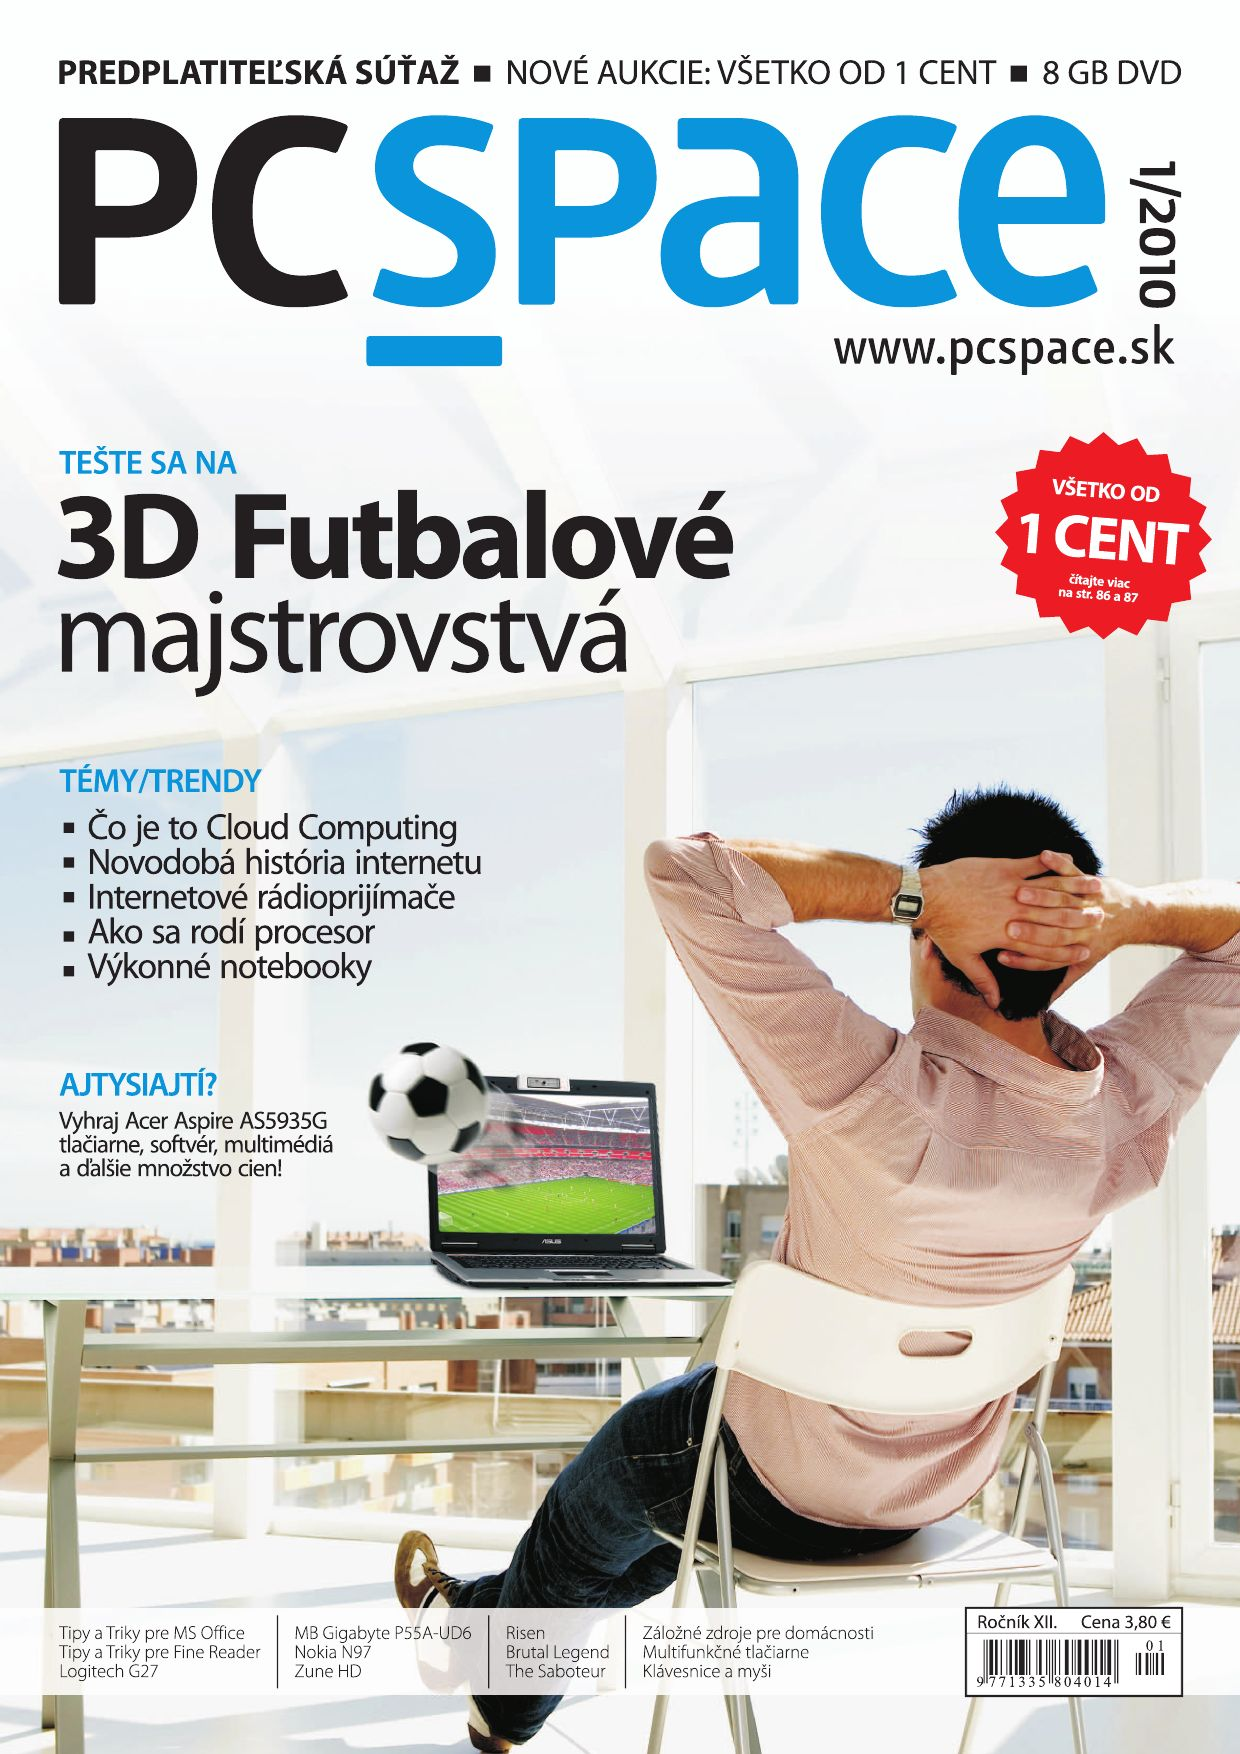 be352e63d PCSPACE 01-2010 by PC_Space s.r.o. - issuu